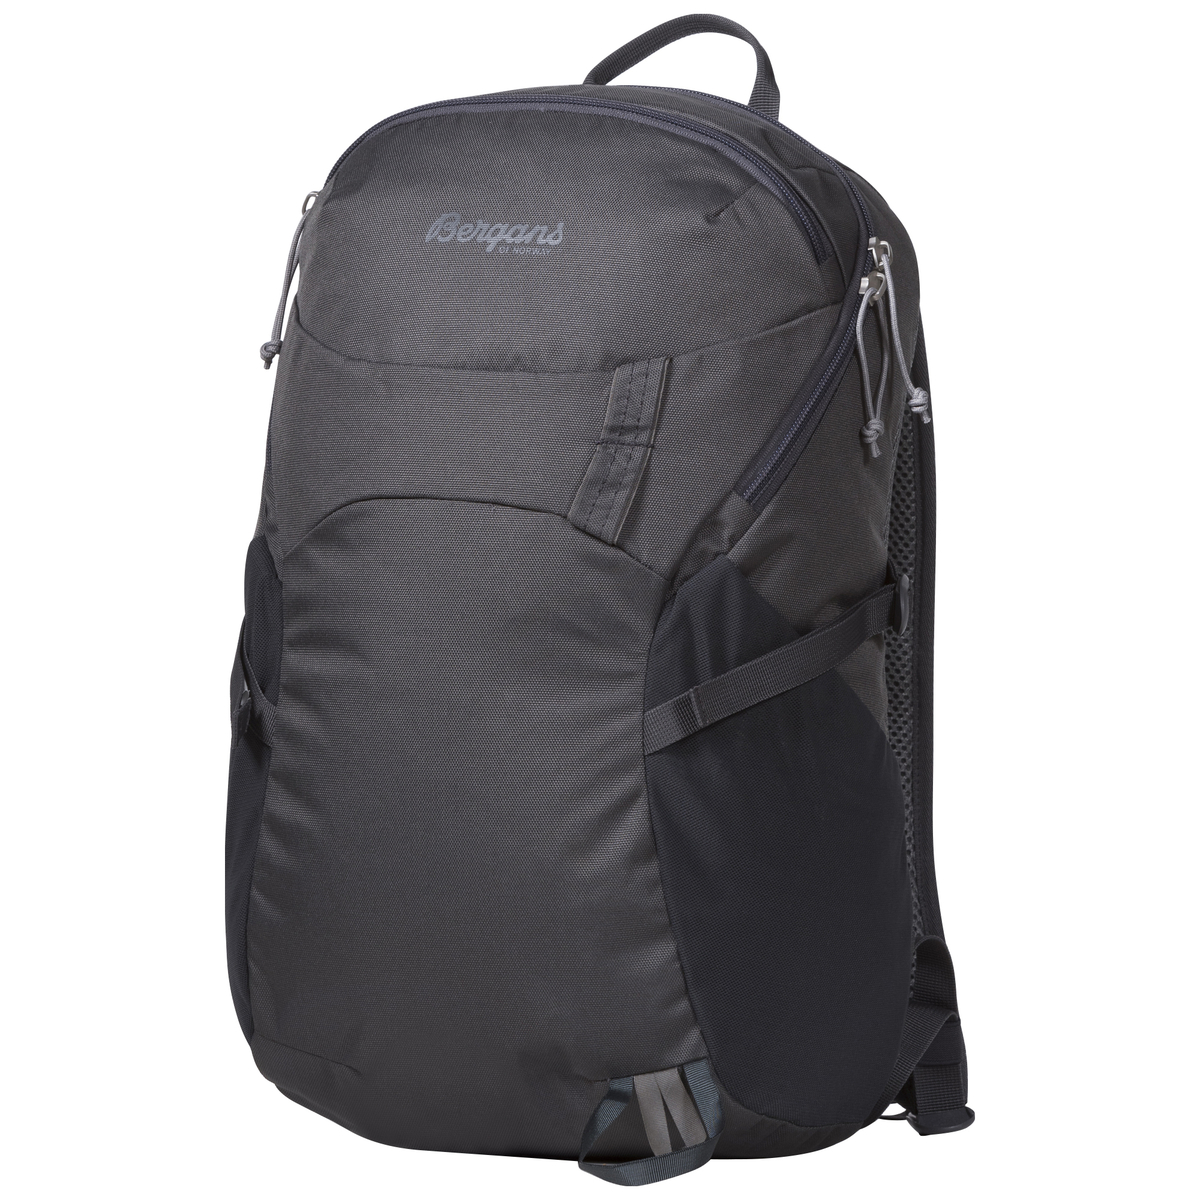 b824c7f1 Buy ryggsekk og bag. Shop every store on the internet via PricePi.com